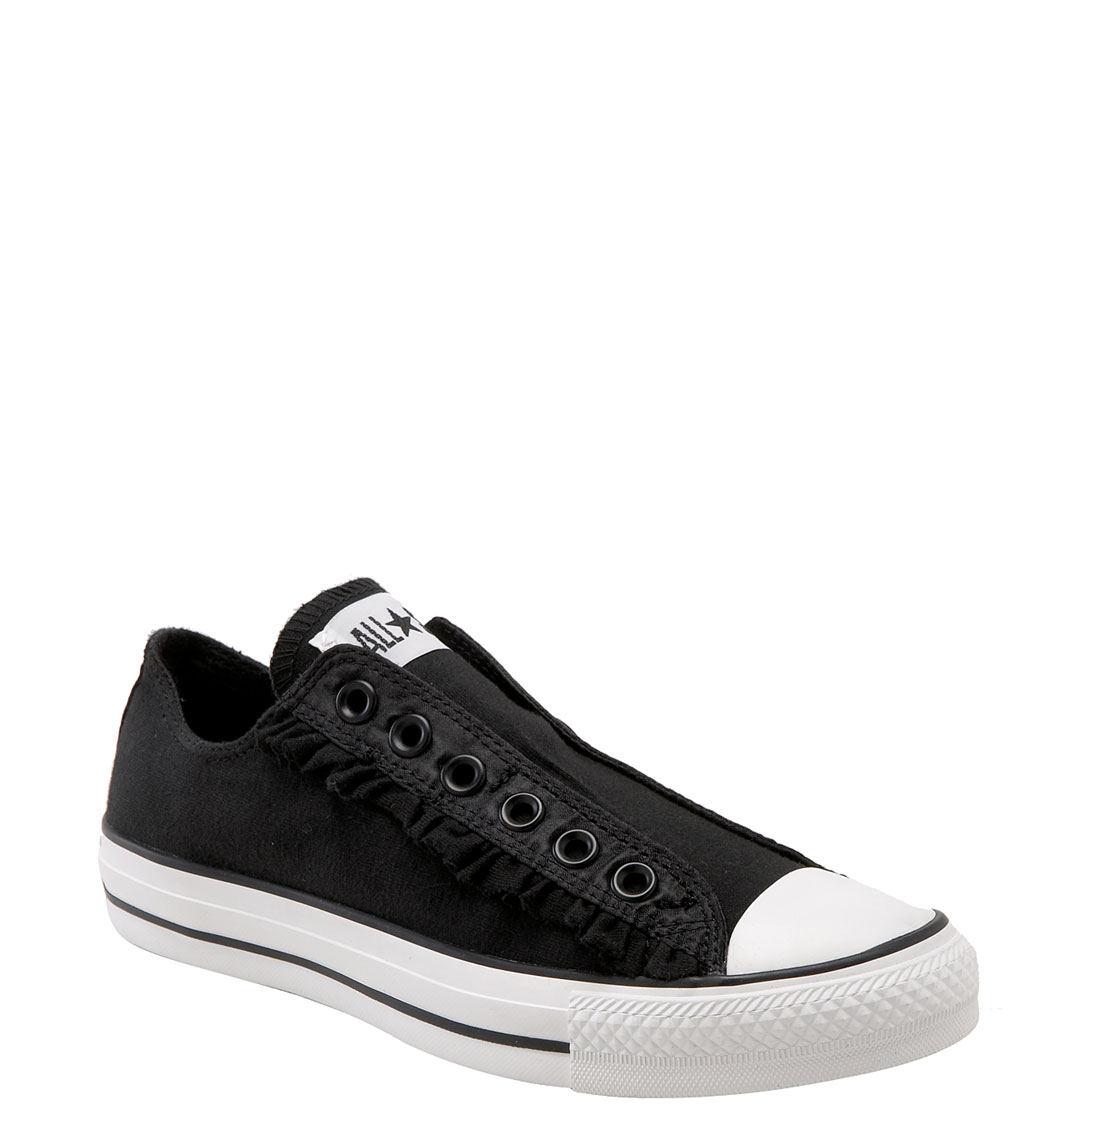 converse chuck taylor ruffle slip on sneaker in black black white. Black Bedroom Furniture Sets. Home Design Ideas